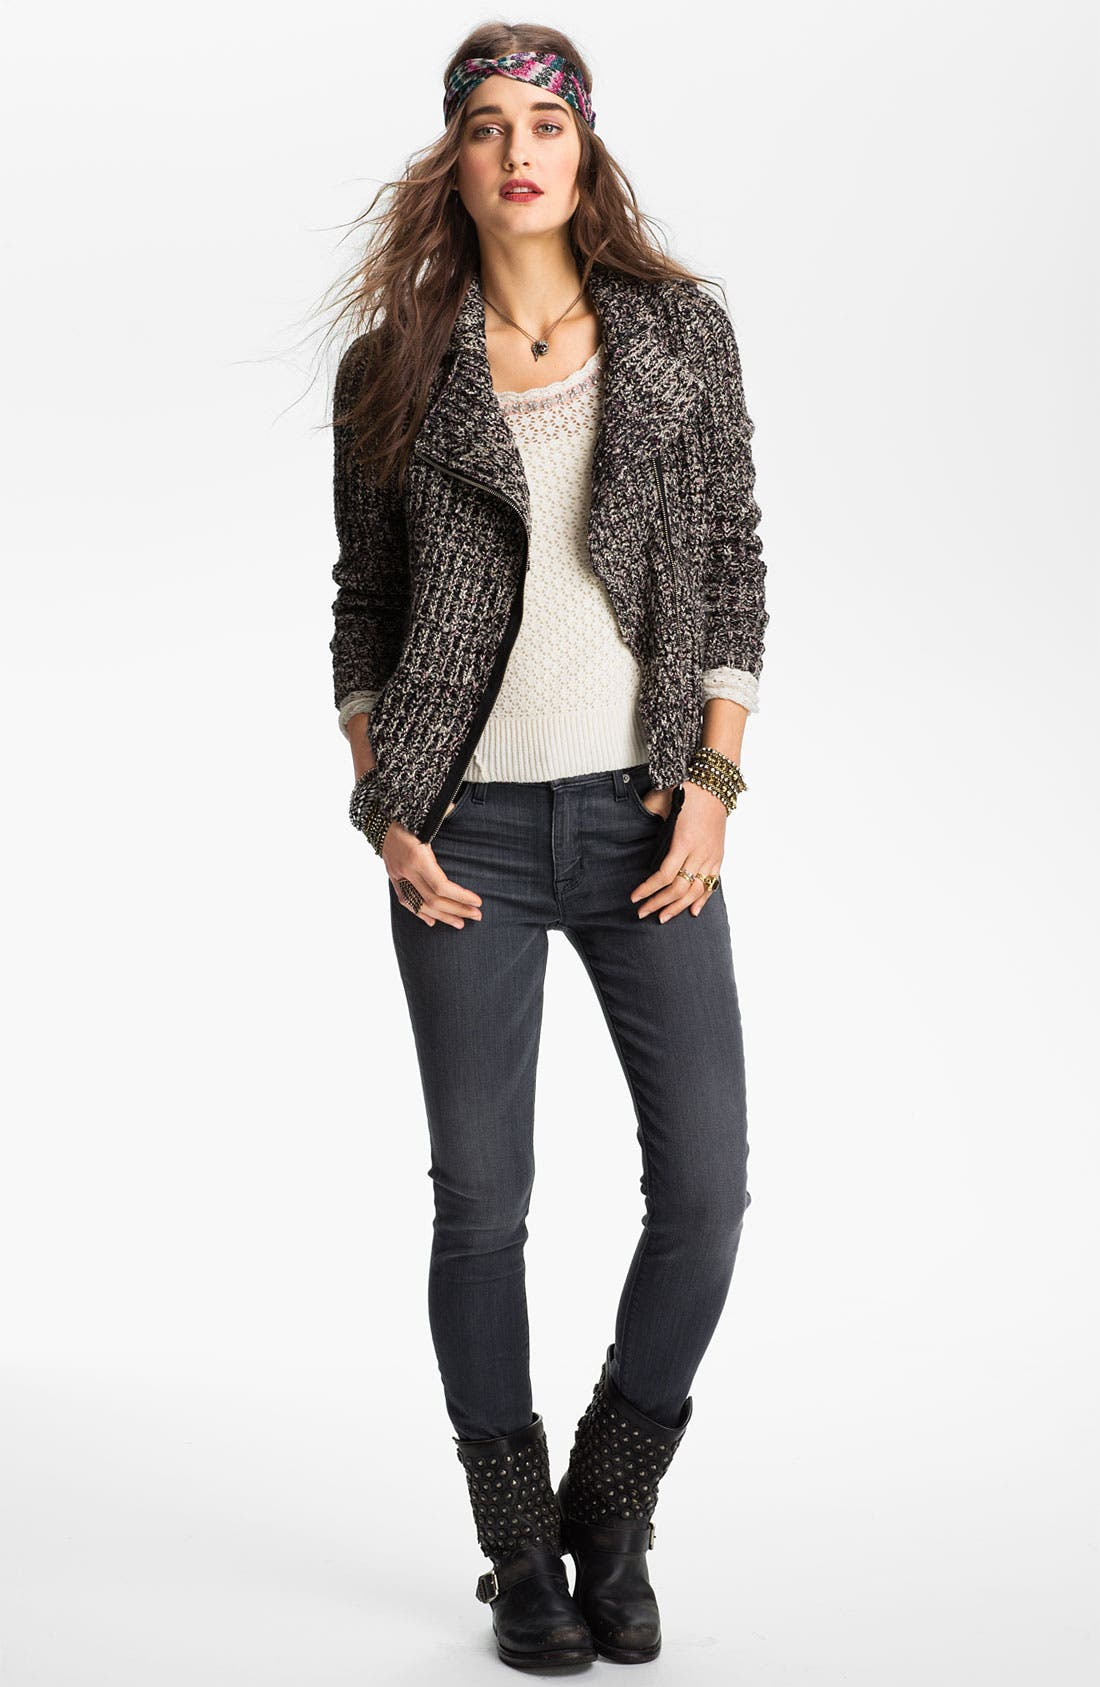 Alternate Image 1 Selected - Free People 'Salt & Pepper' Knit Biker Jacket